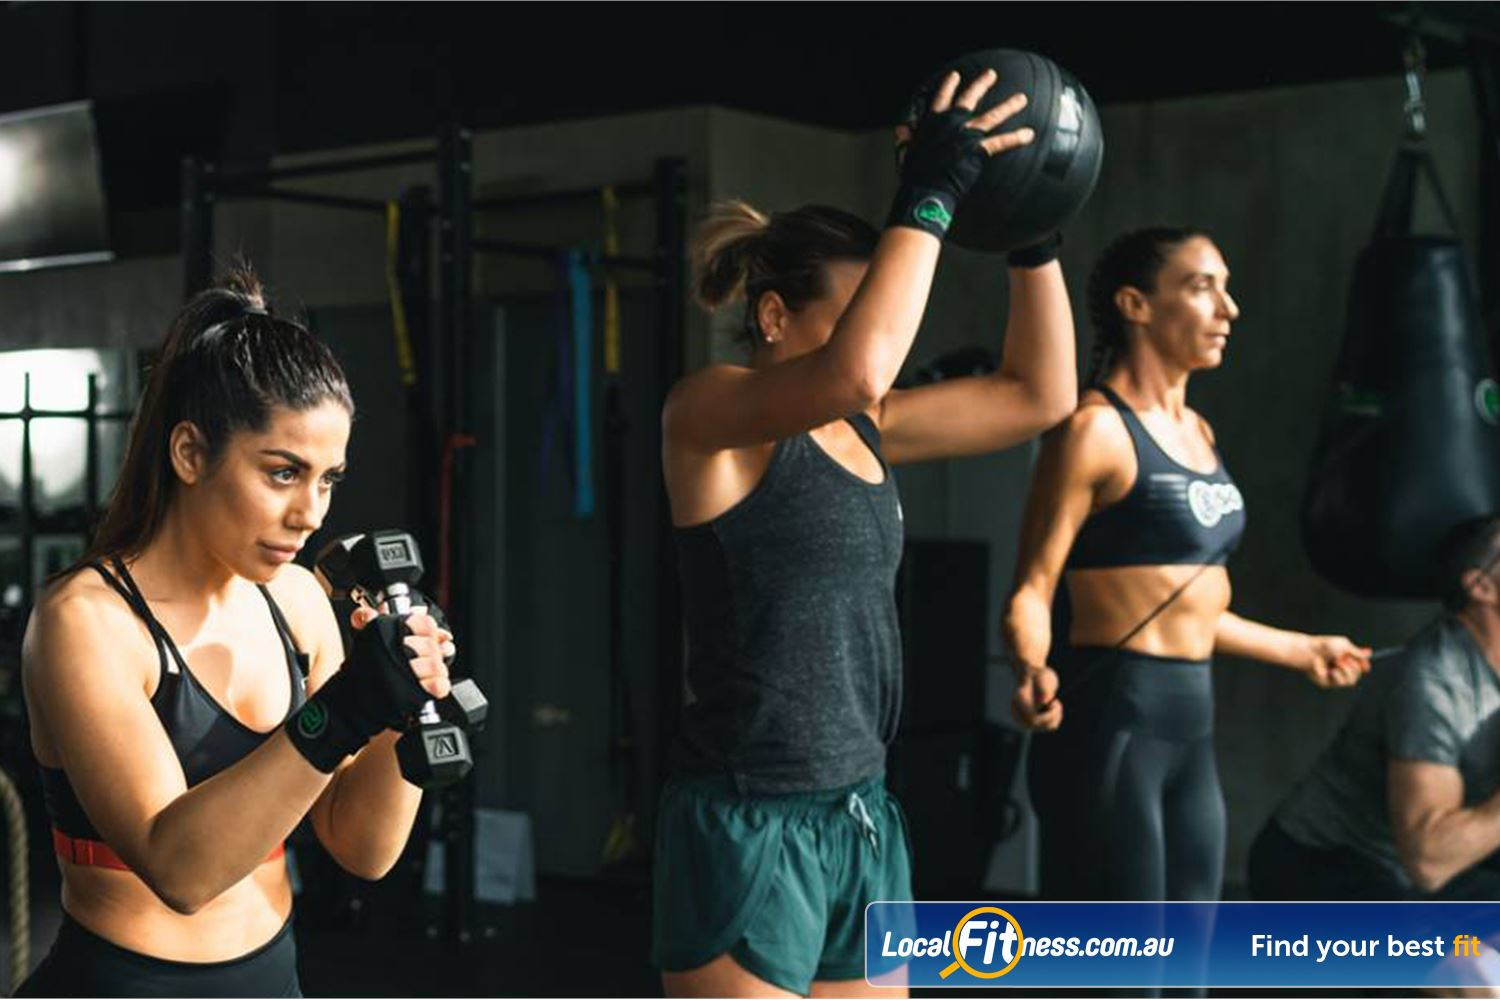 12 Round Fitness Camberwell Our Camberwell functional training workouts are fast, fun and never boring.